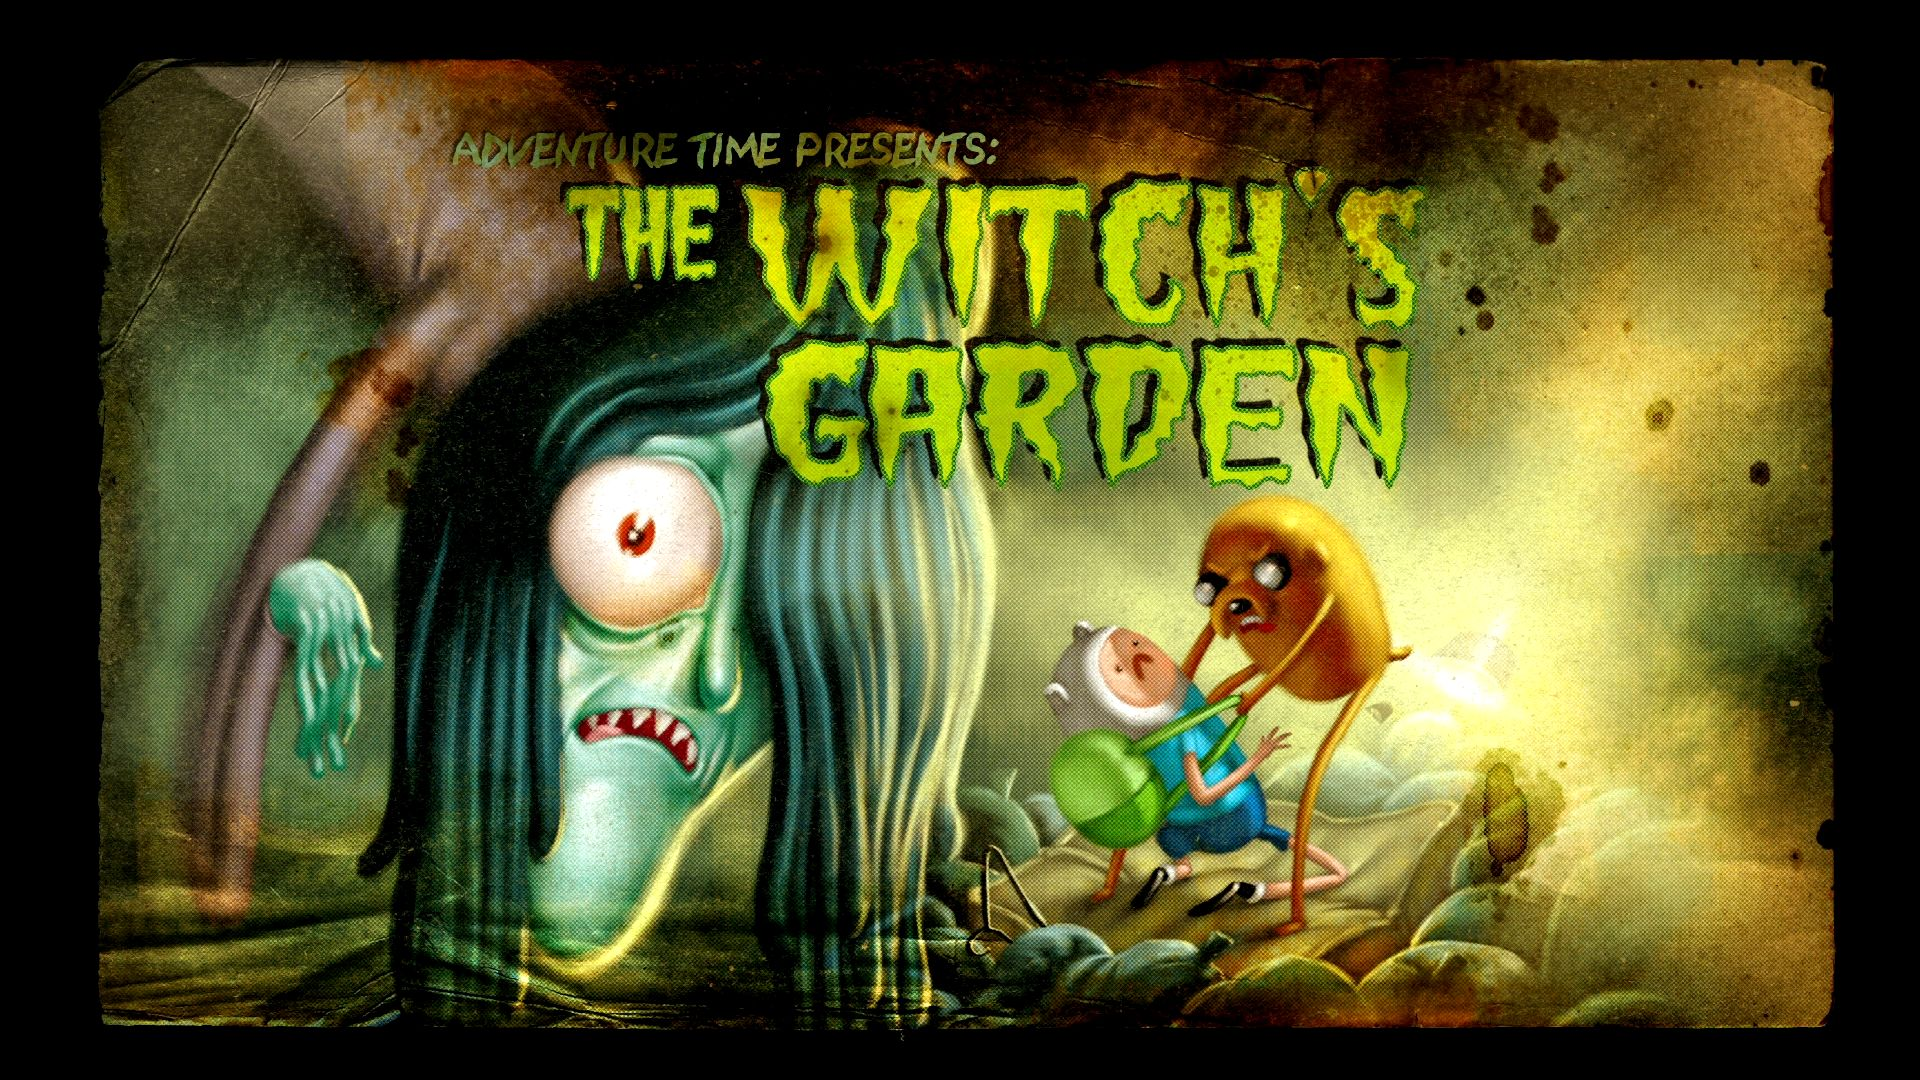 File:Titlecard S1E14 thewitchsgarden.jpg